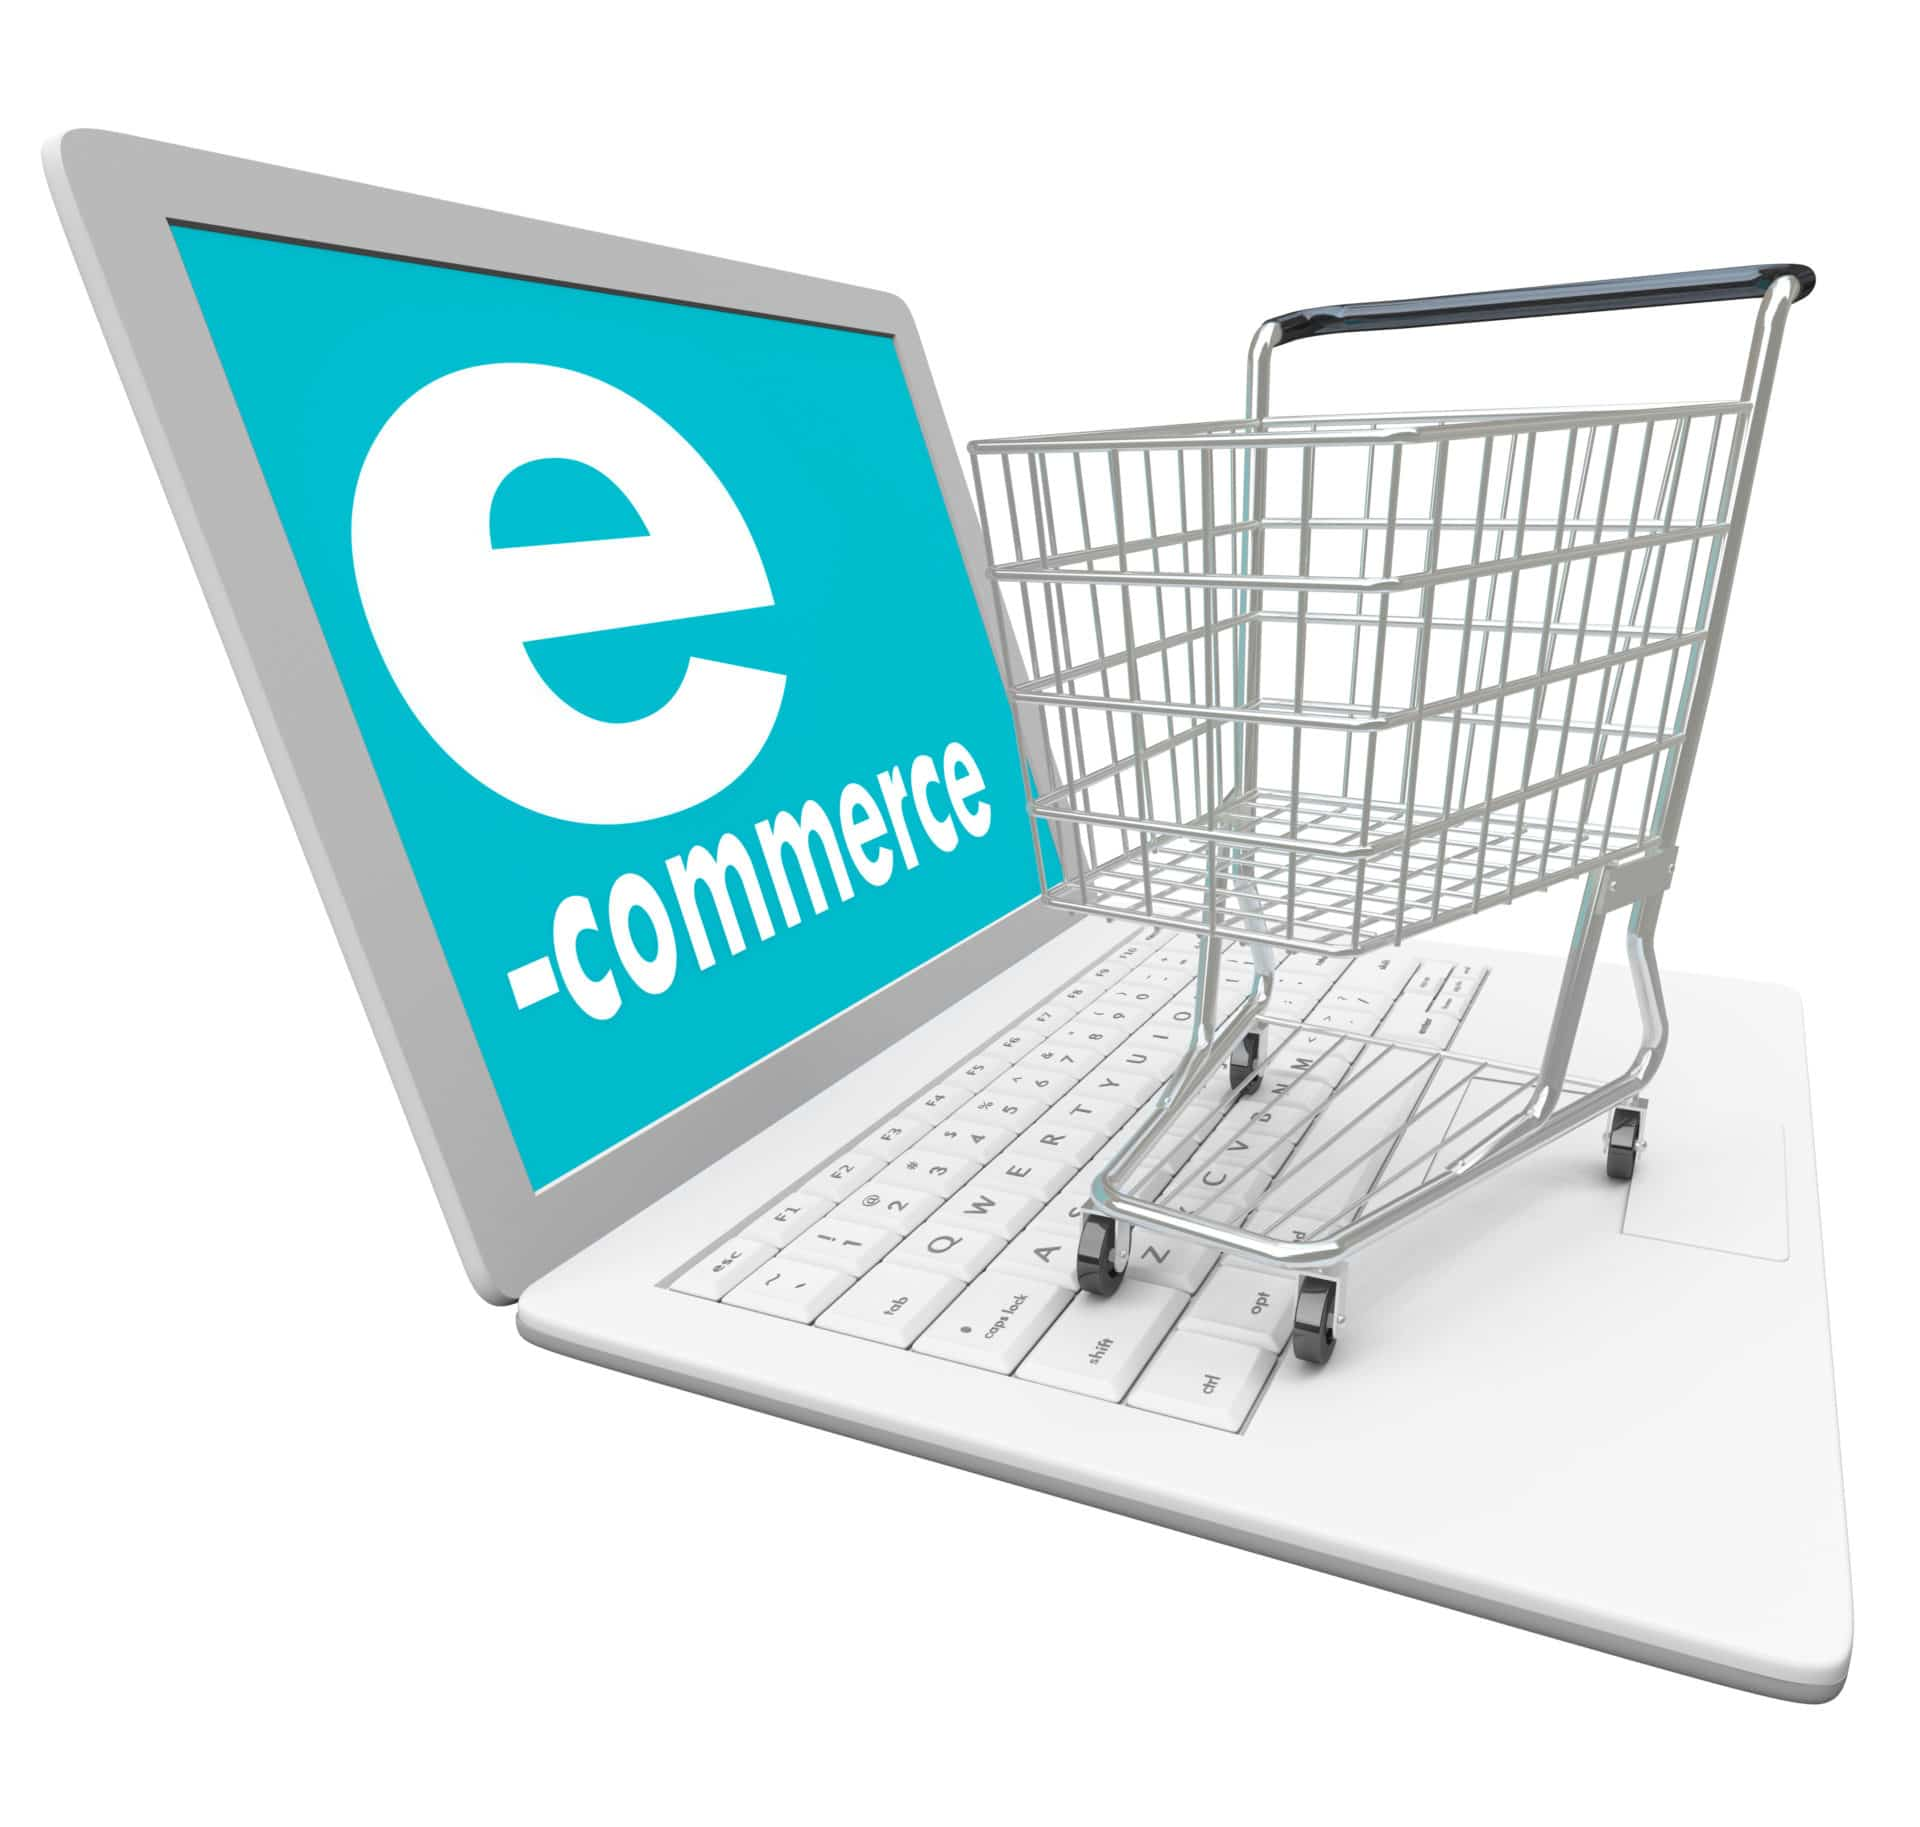 e commers Holland & knight's e-commerce team helps clients address the unique challenges that arise when your business involves e-commerce, including compliance with internet and technology law requirements.